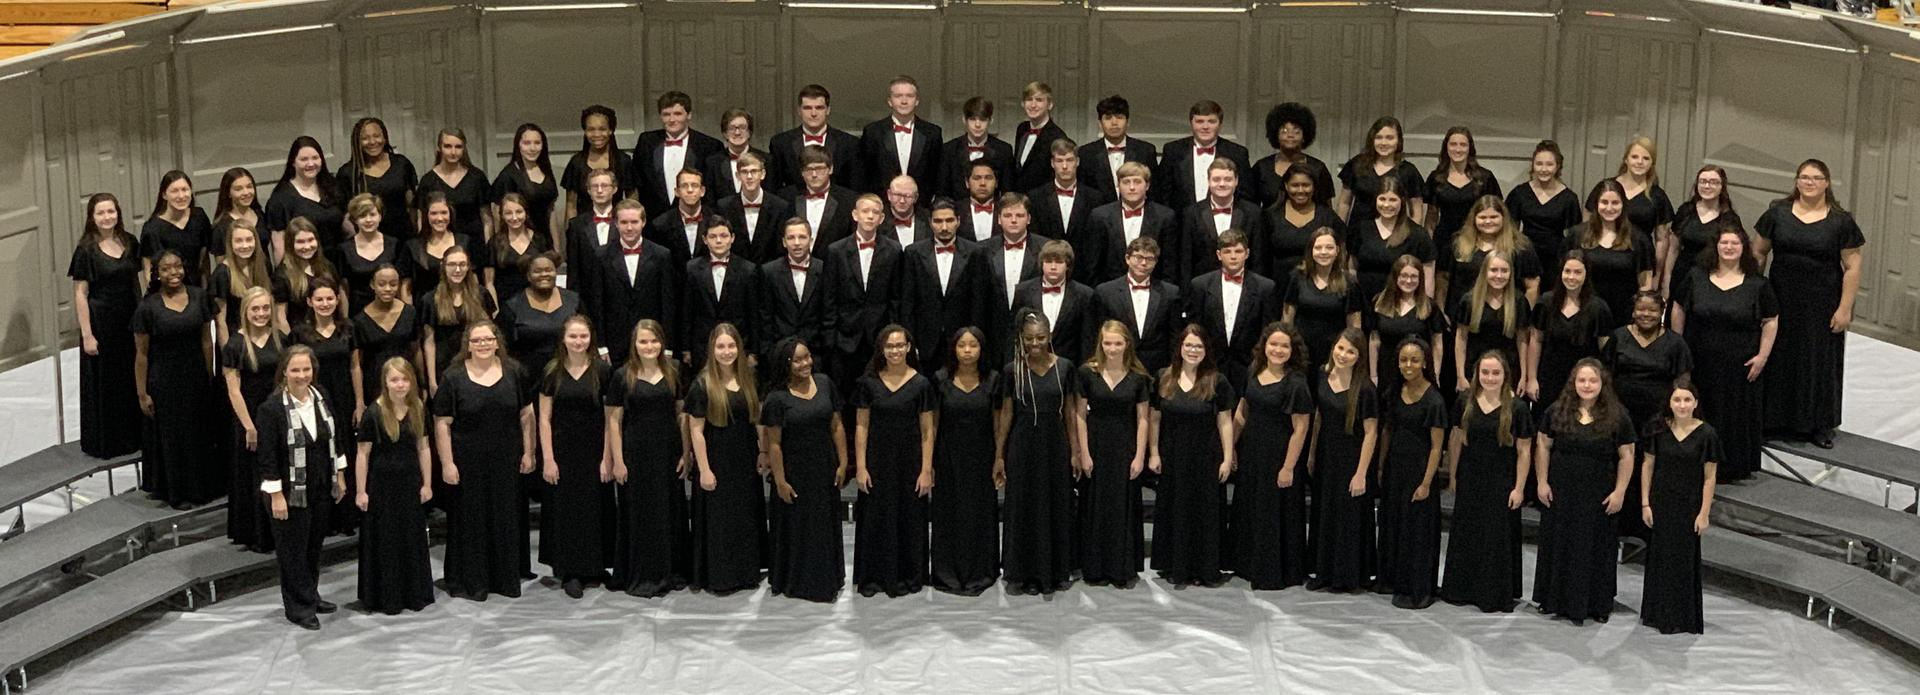 NCHS Choir Photo